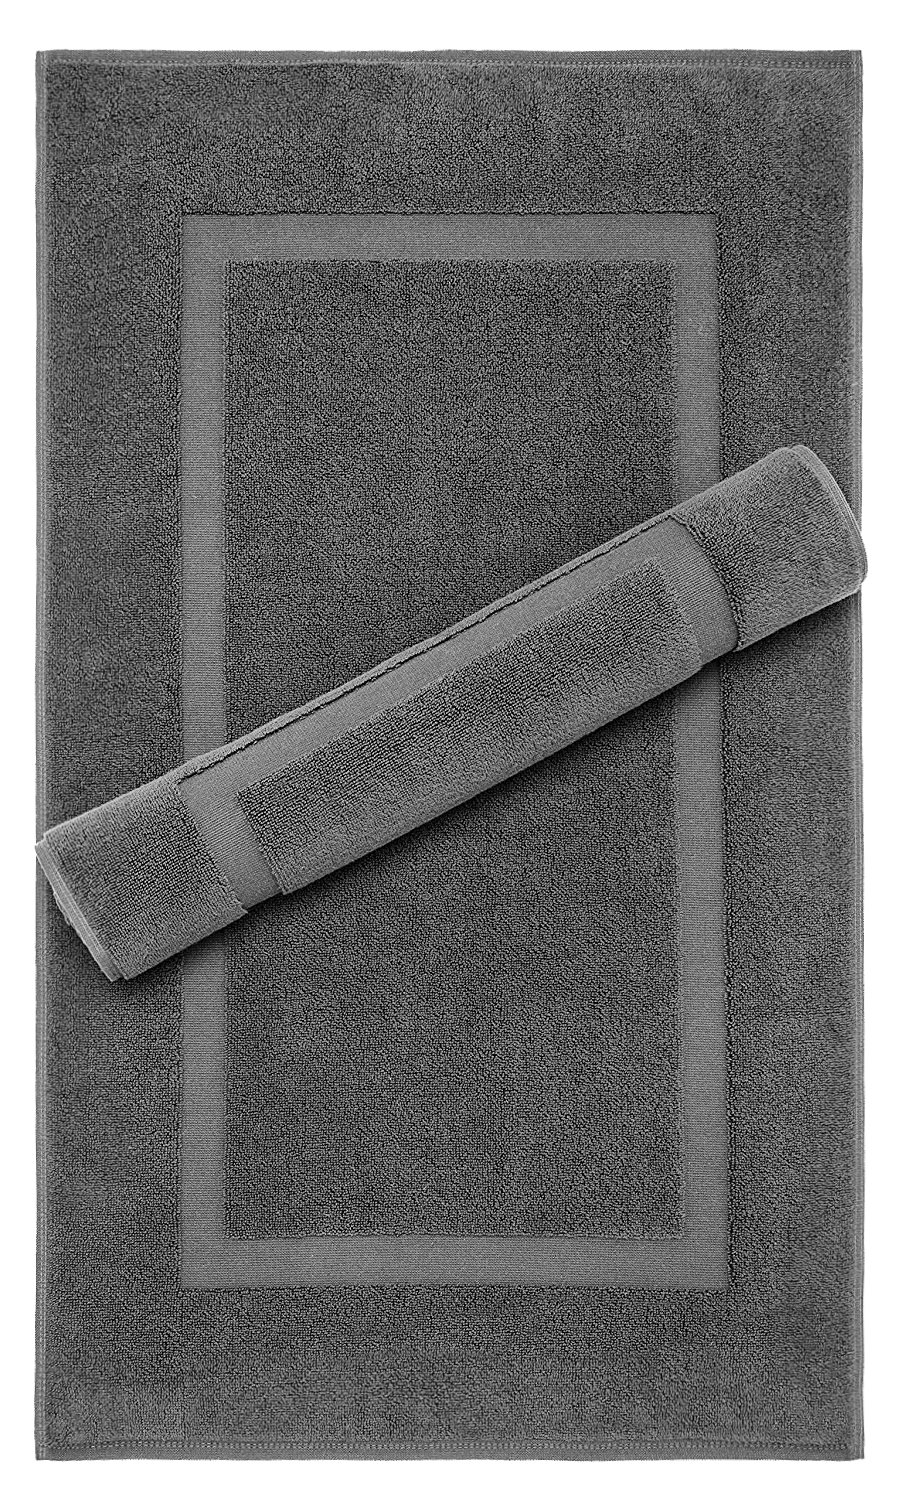 Machine Washable Bath Mat, Floor Mat, 2 Pack, 900 GSM, 21x34 Inches, 100% Ringspun Cotton, Luxury Hotel & Spa Quality, Absorbent and Soft by American Bath Towels, Dark Grey